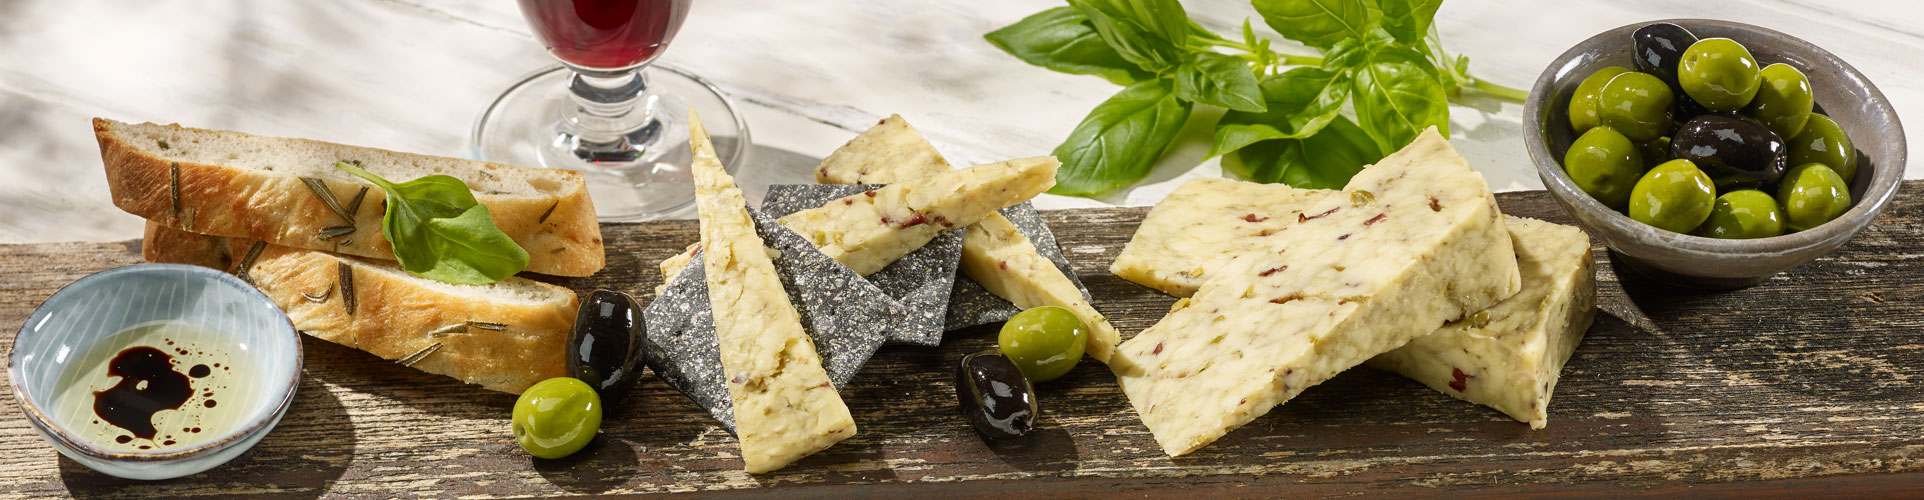 Coombe Castle International Savoury Blends Olive Grove Lifestyle